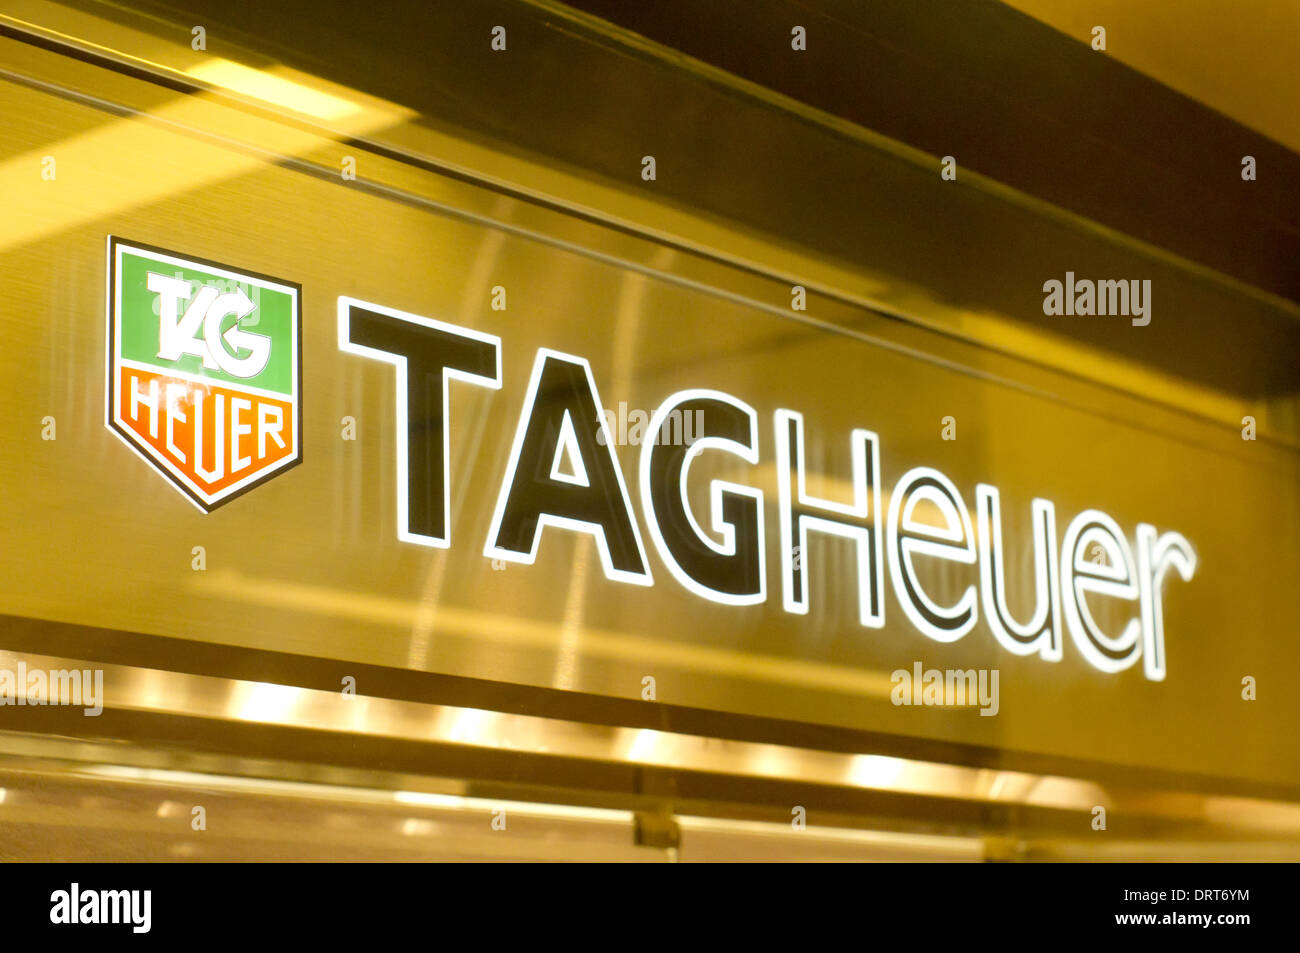 Tag Heuer store sign - Stock Image